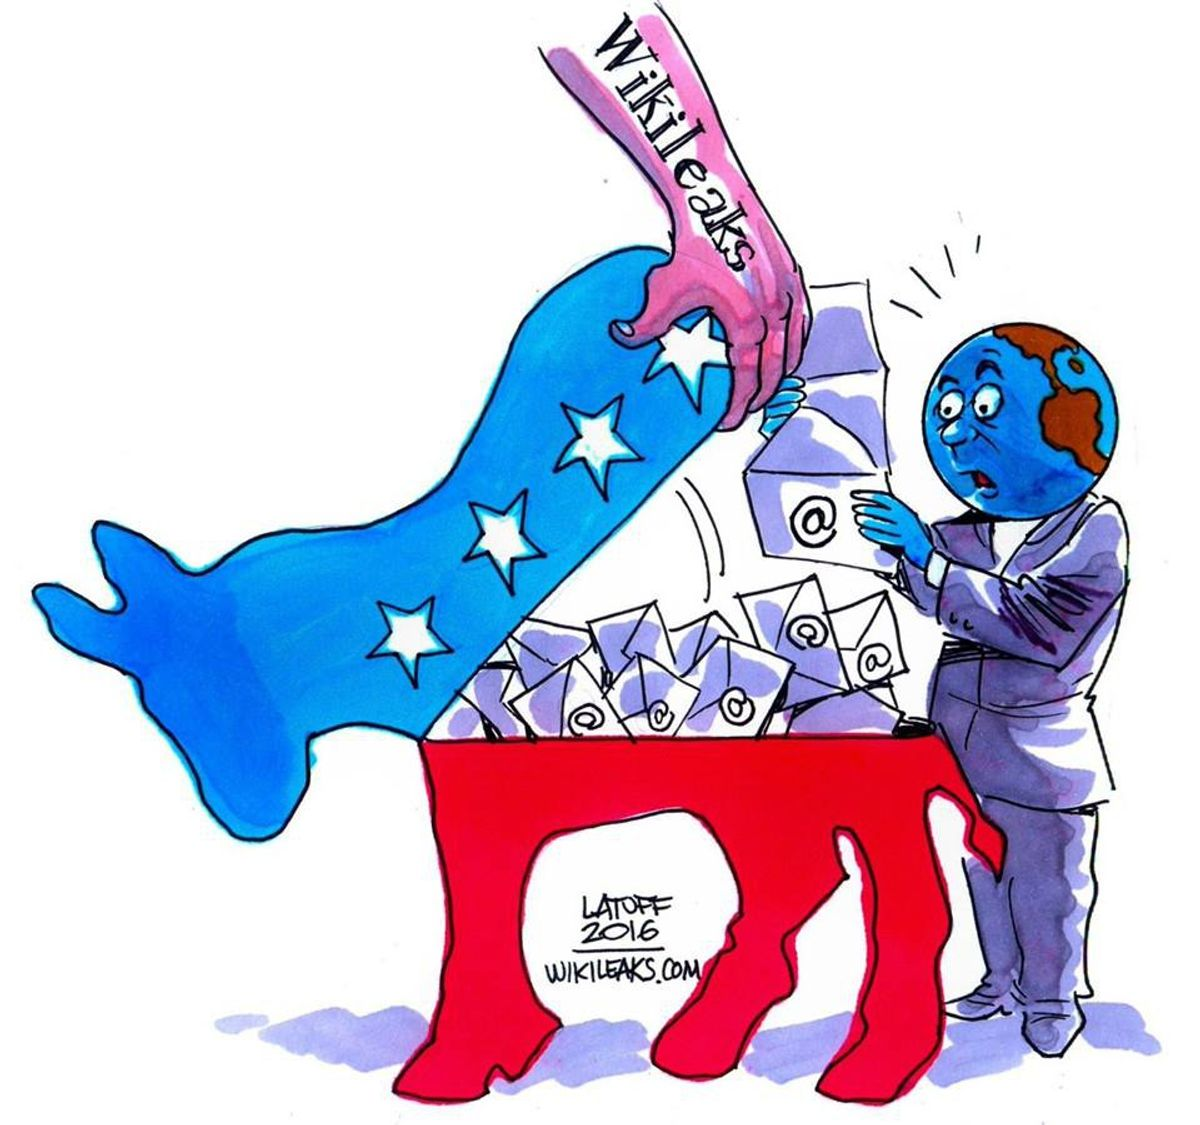 Can We Ever Trust the DNC Again